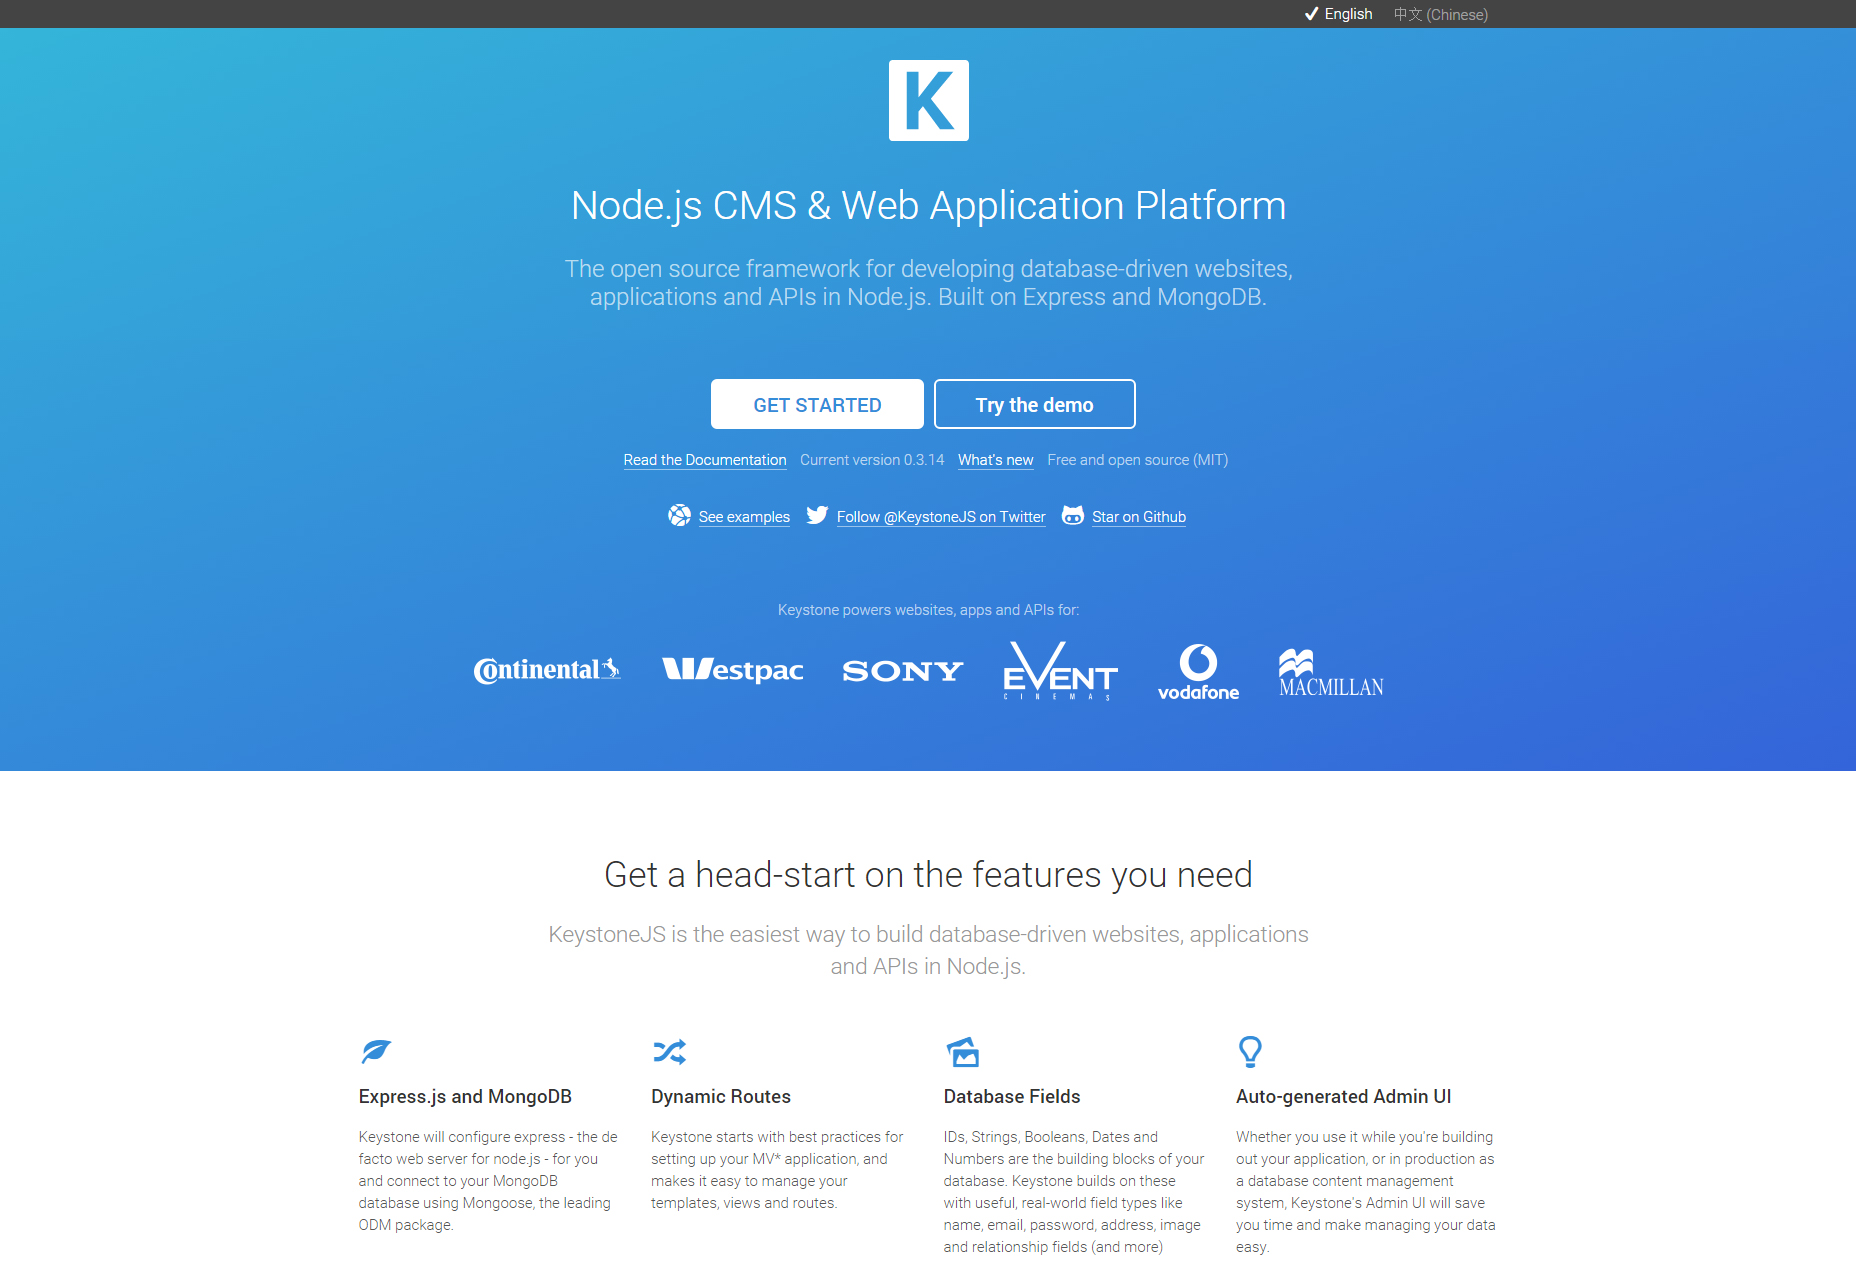 KeystoneJS: Node.js CMS and Web Application Platform